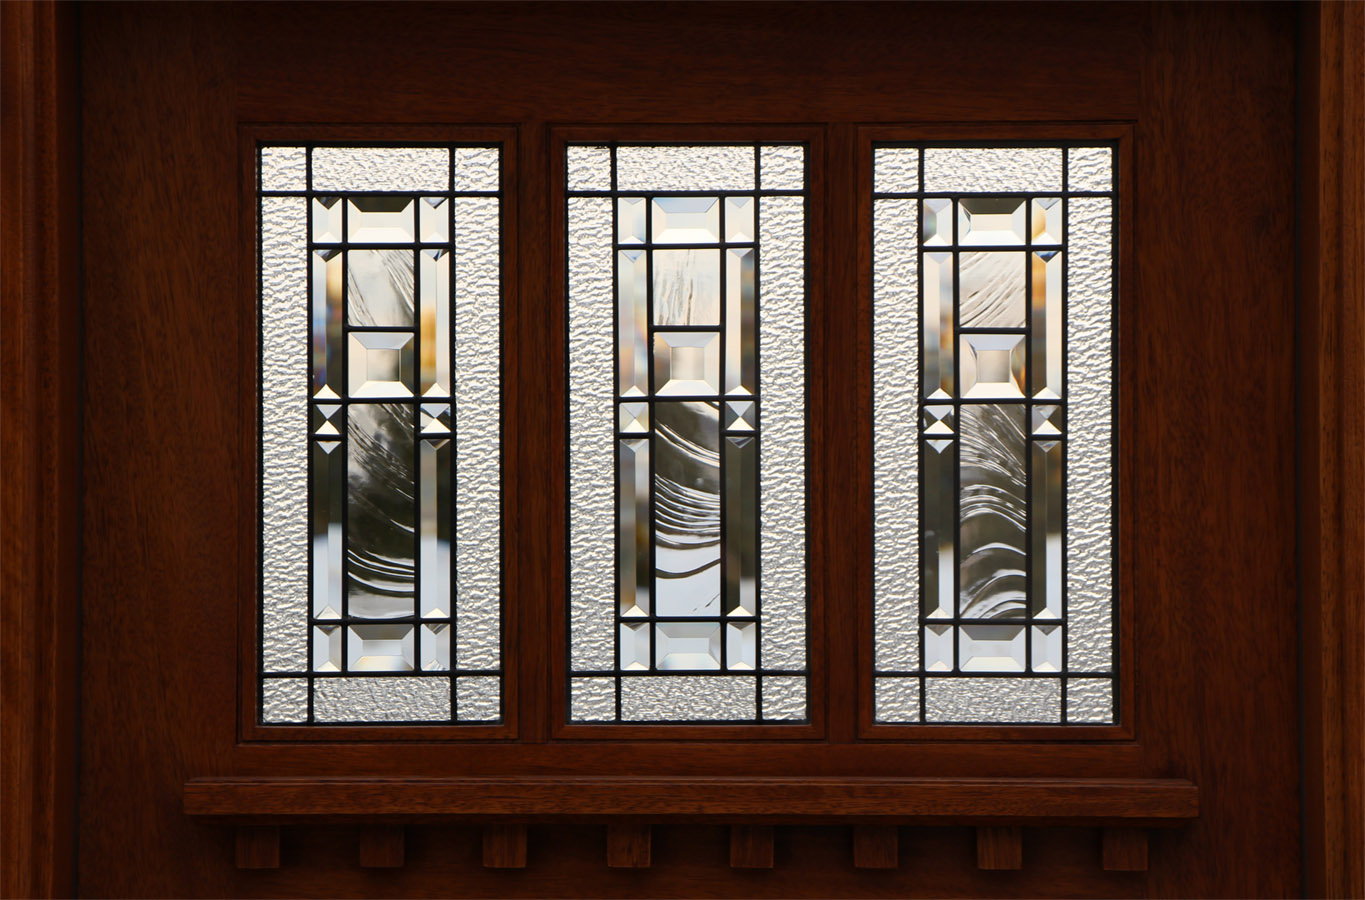 900 #2F1308 Exterior Craftsman Door With Transom And Art Glass save image Exterior Doors Discount 45271365